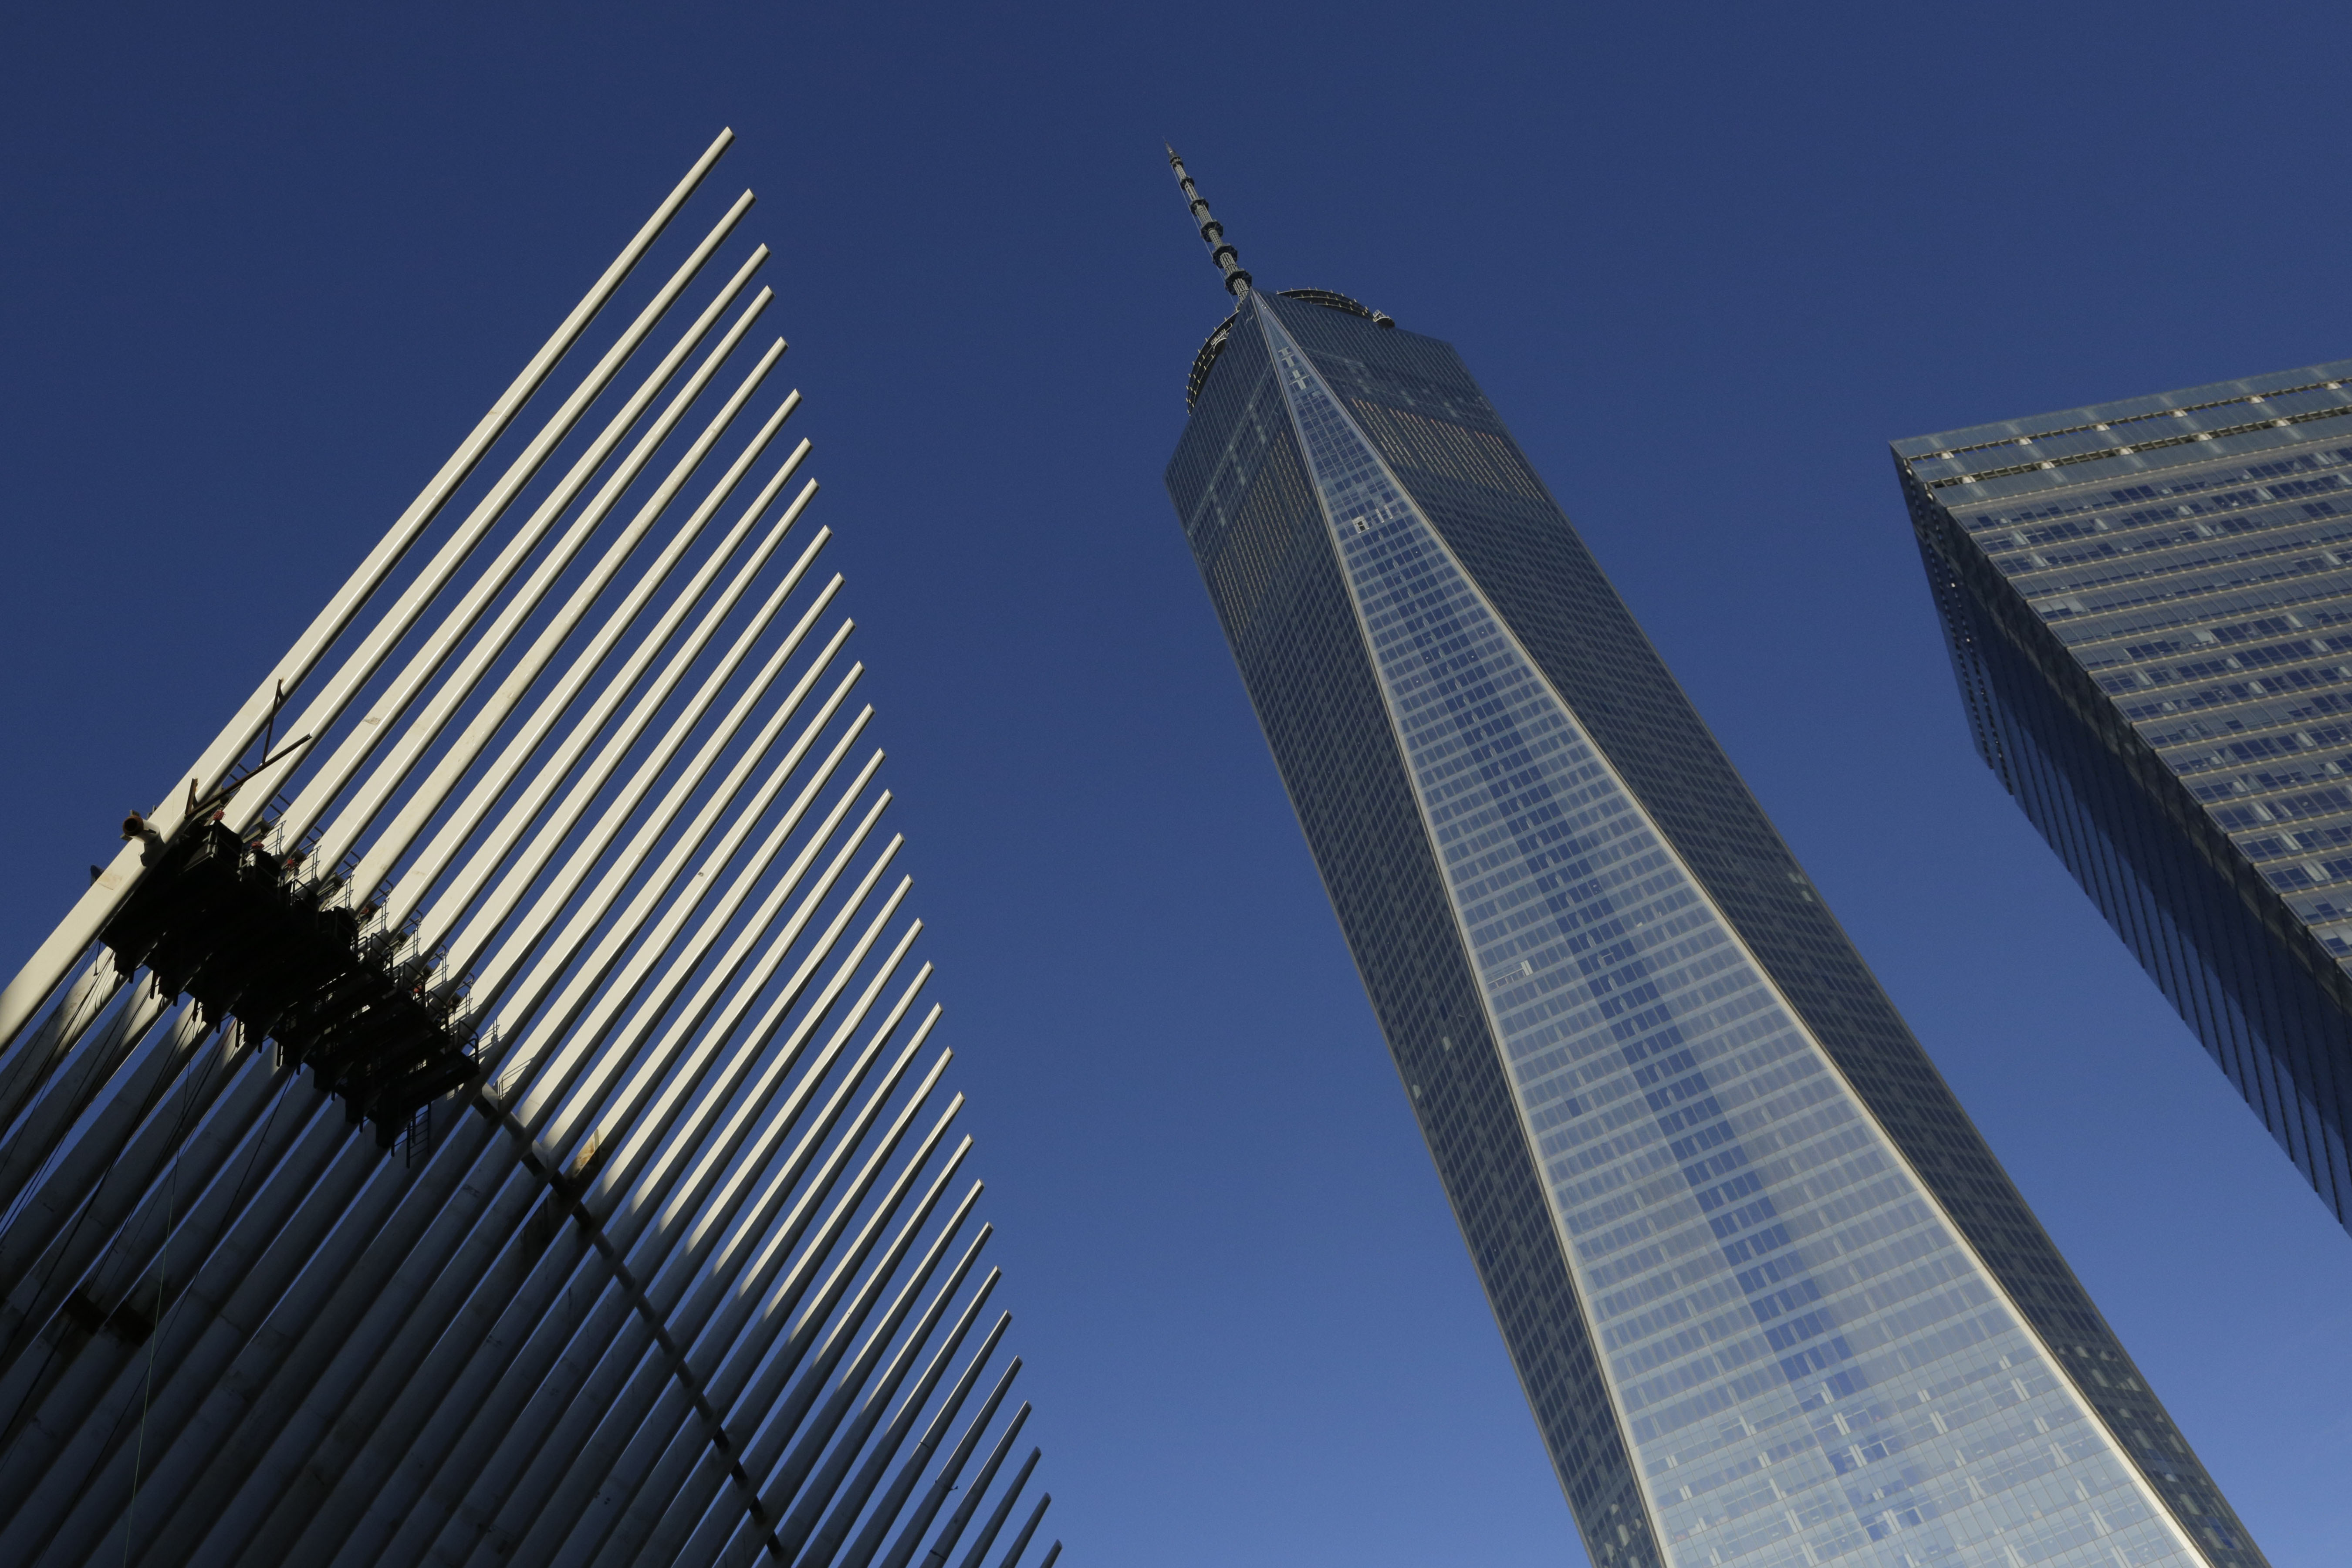 One World Trade Center stands between the transportation hub, left, still under construction, and 7 World Trade Center, right, Monday, Nov. 3, 2014 in New York. Thirteen years after the 9/11 terrorist attack, the resurrected World Trade Center is again opening for business, marking an emotional milestone for both New Yorkers and the United States as a whole. Publishing giant Conde Nast will start moving Monday into One World Trade Center, a 104-story, $3.9 billion skyscraper that dominates the Manhattan skyline. (AP Photo/Mark Lennihan)